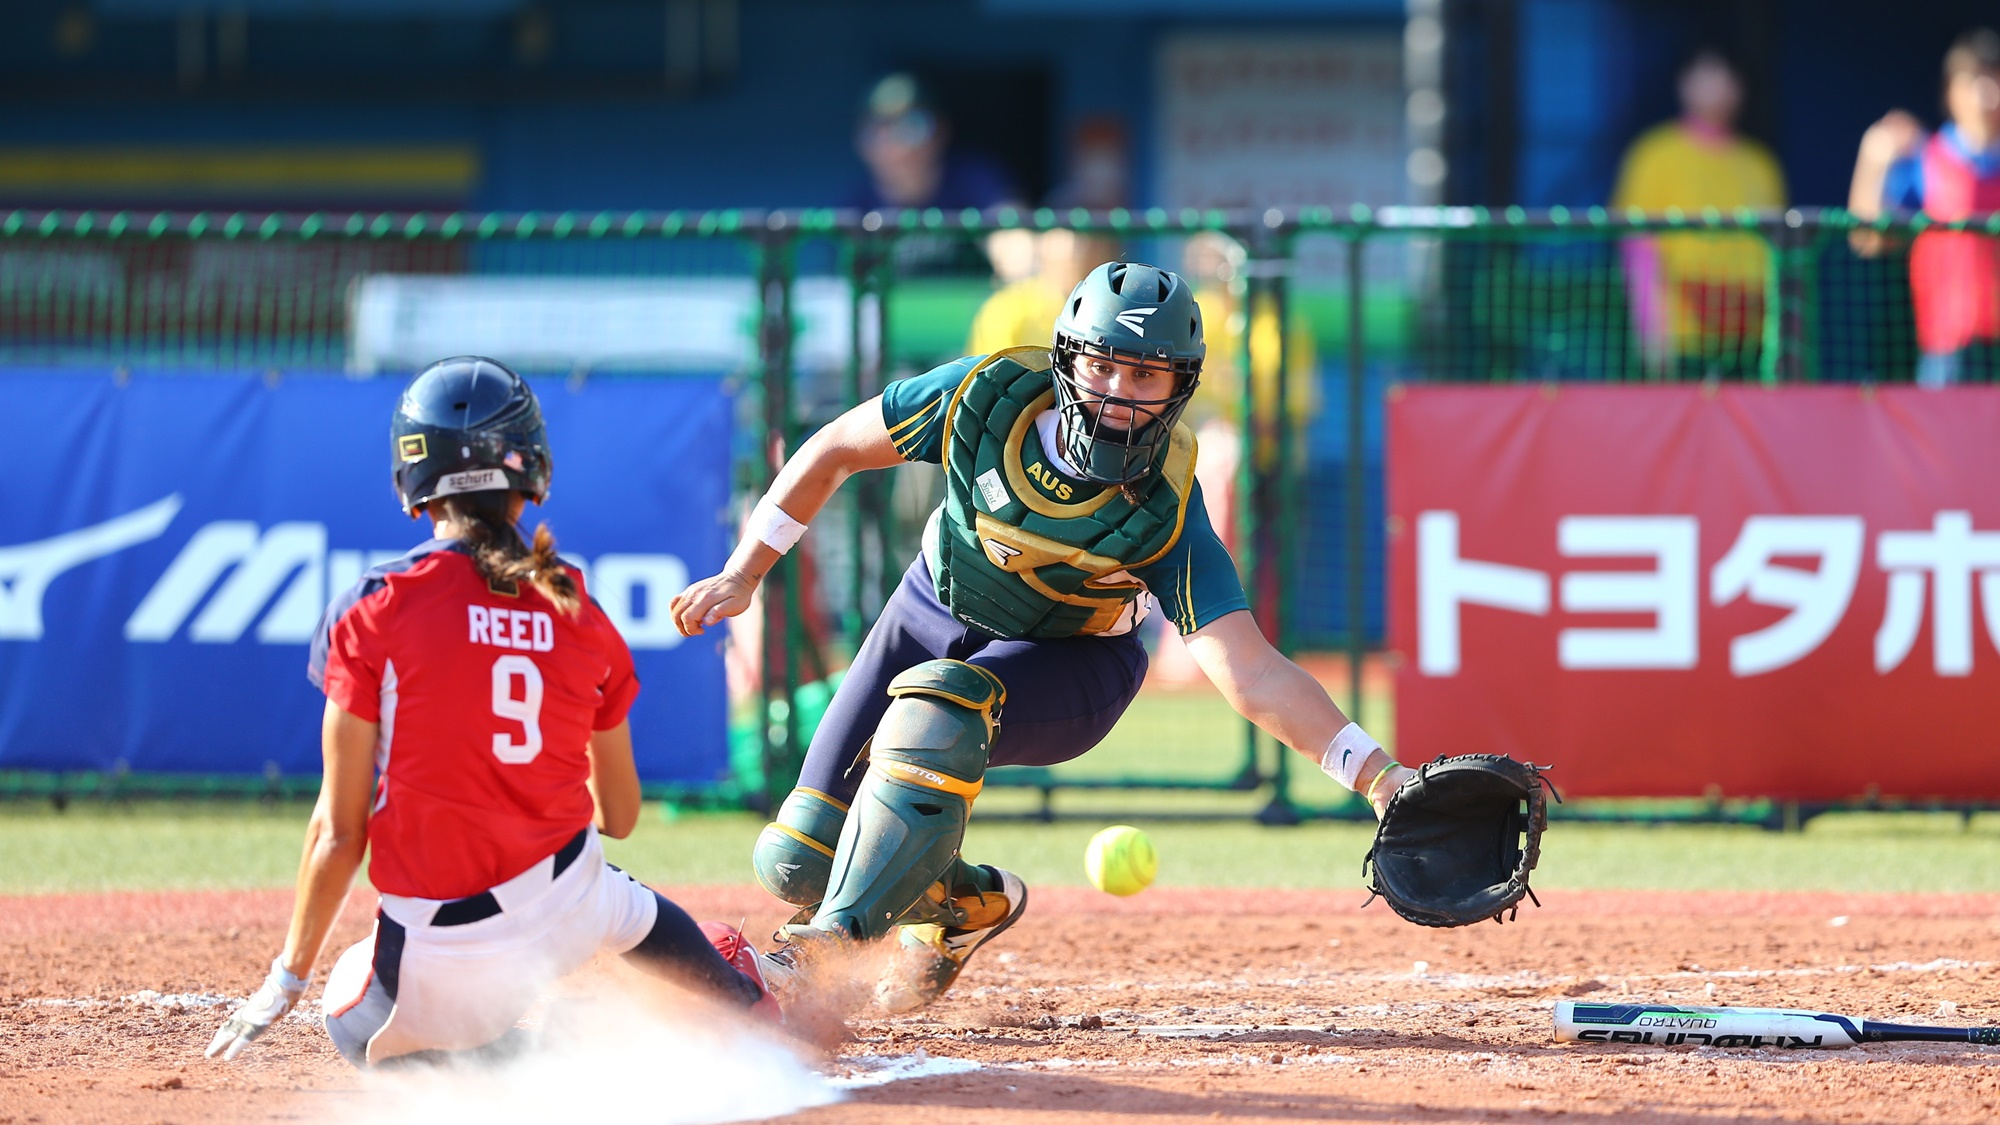 Janette Reed scored the go ahead run for the defending champions